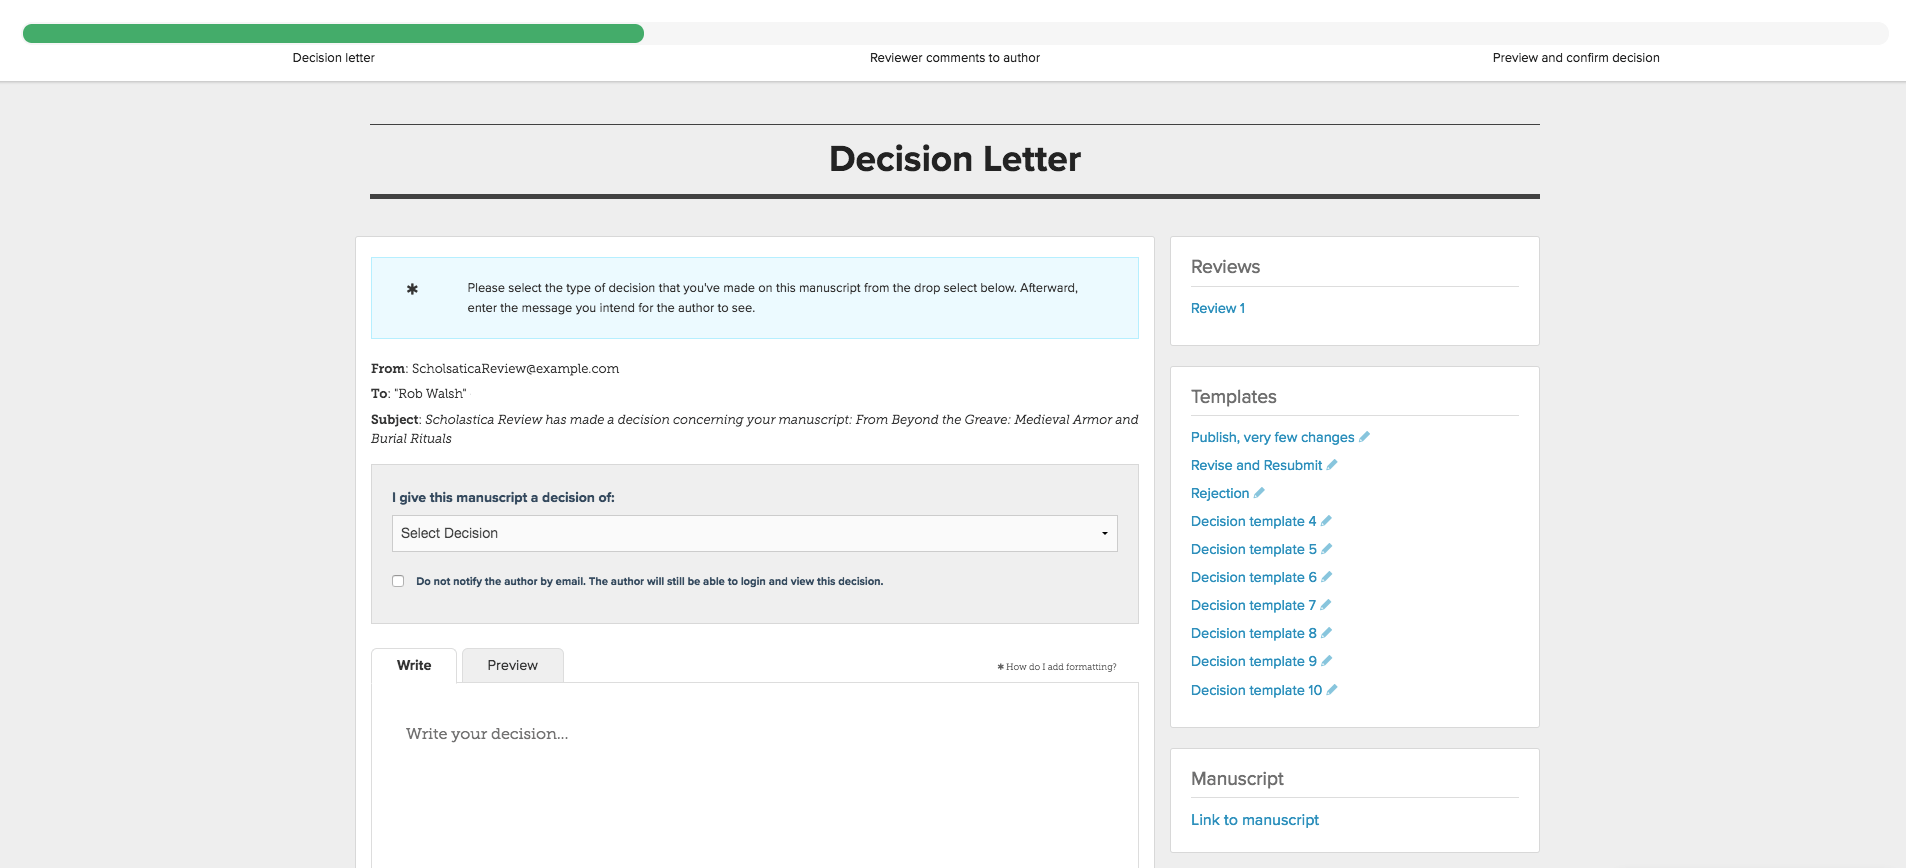 Build Customizable Templates For Your Decision Letters And Easily Send  Decision Letters And Reviewer Feedback All Together. Using Scholastica Peer  Review